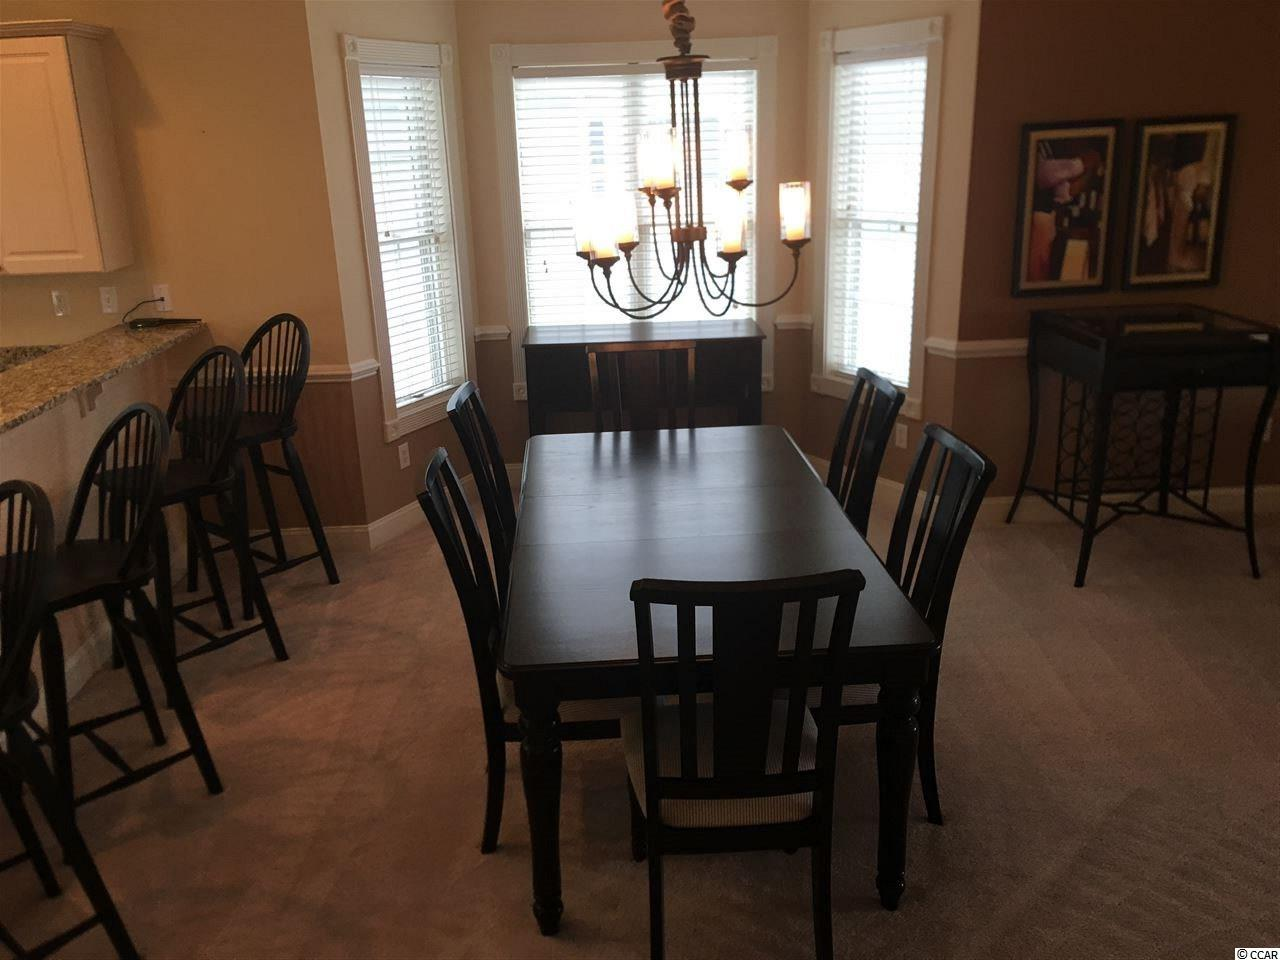 MAGNOLIA POINTE condo at 4851 LUSTER LEAF CIRCLE 401 for sale. 1717724